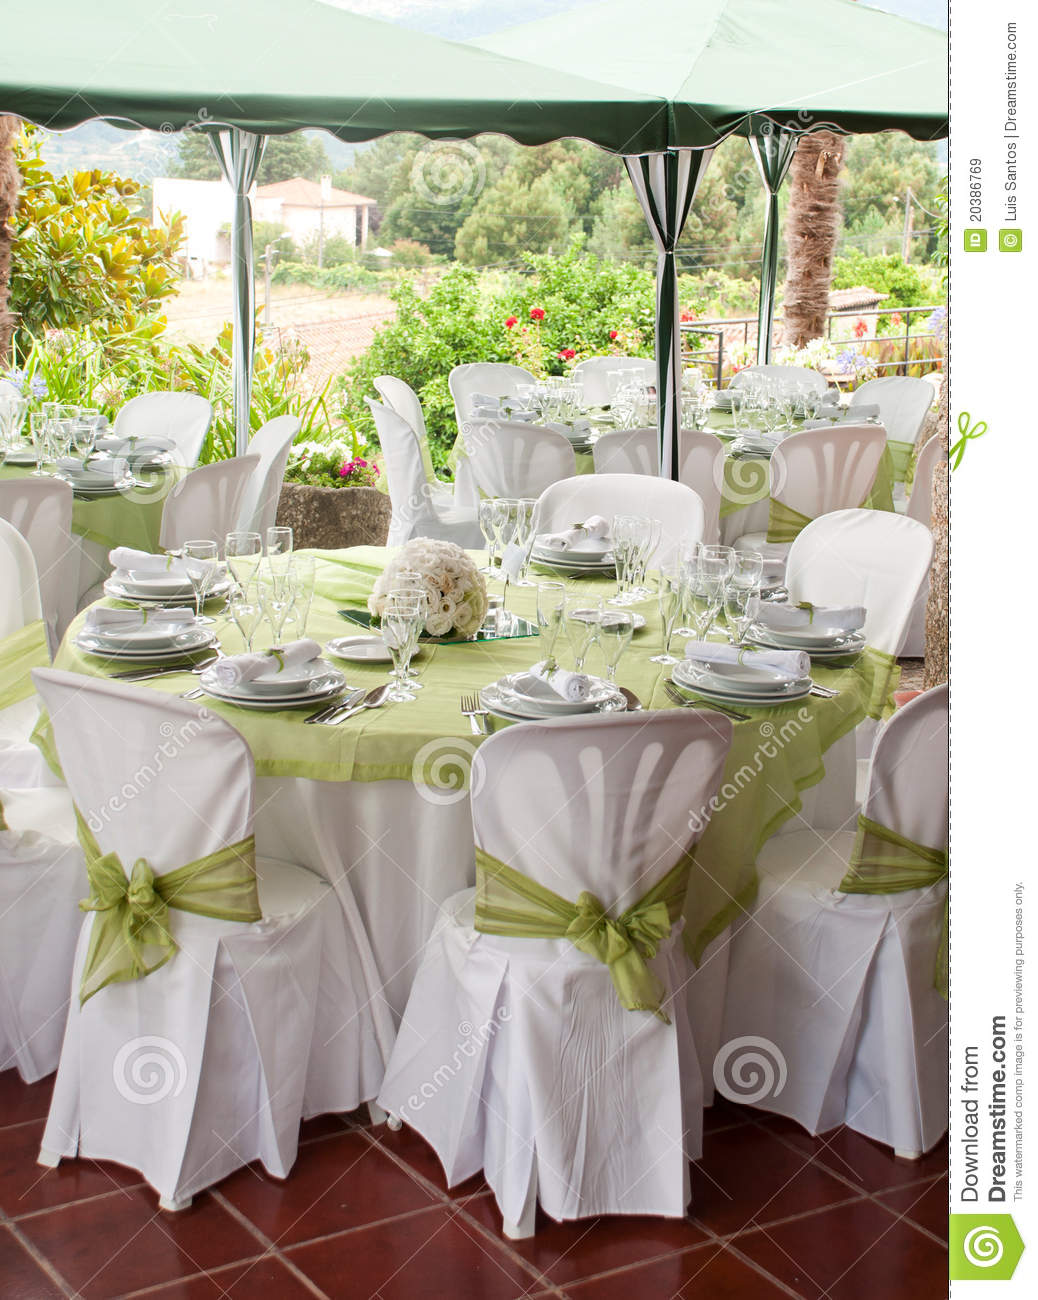 Wedding Table Royalty Free Stock Images Image 20386769 : wedding table 20386769 from www.dreamstime.com size 1038 x 1300 jpeg 196kB